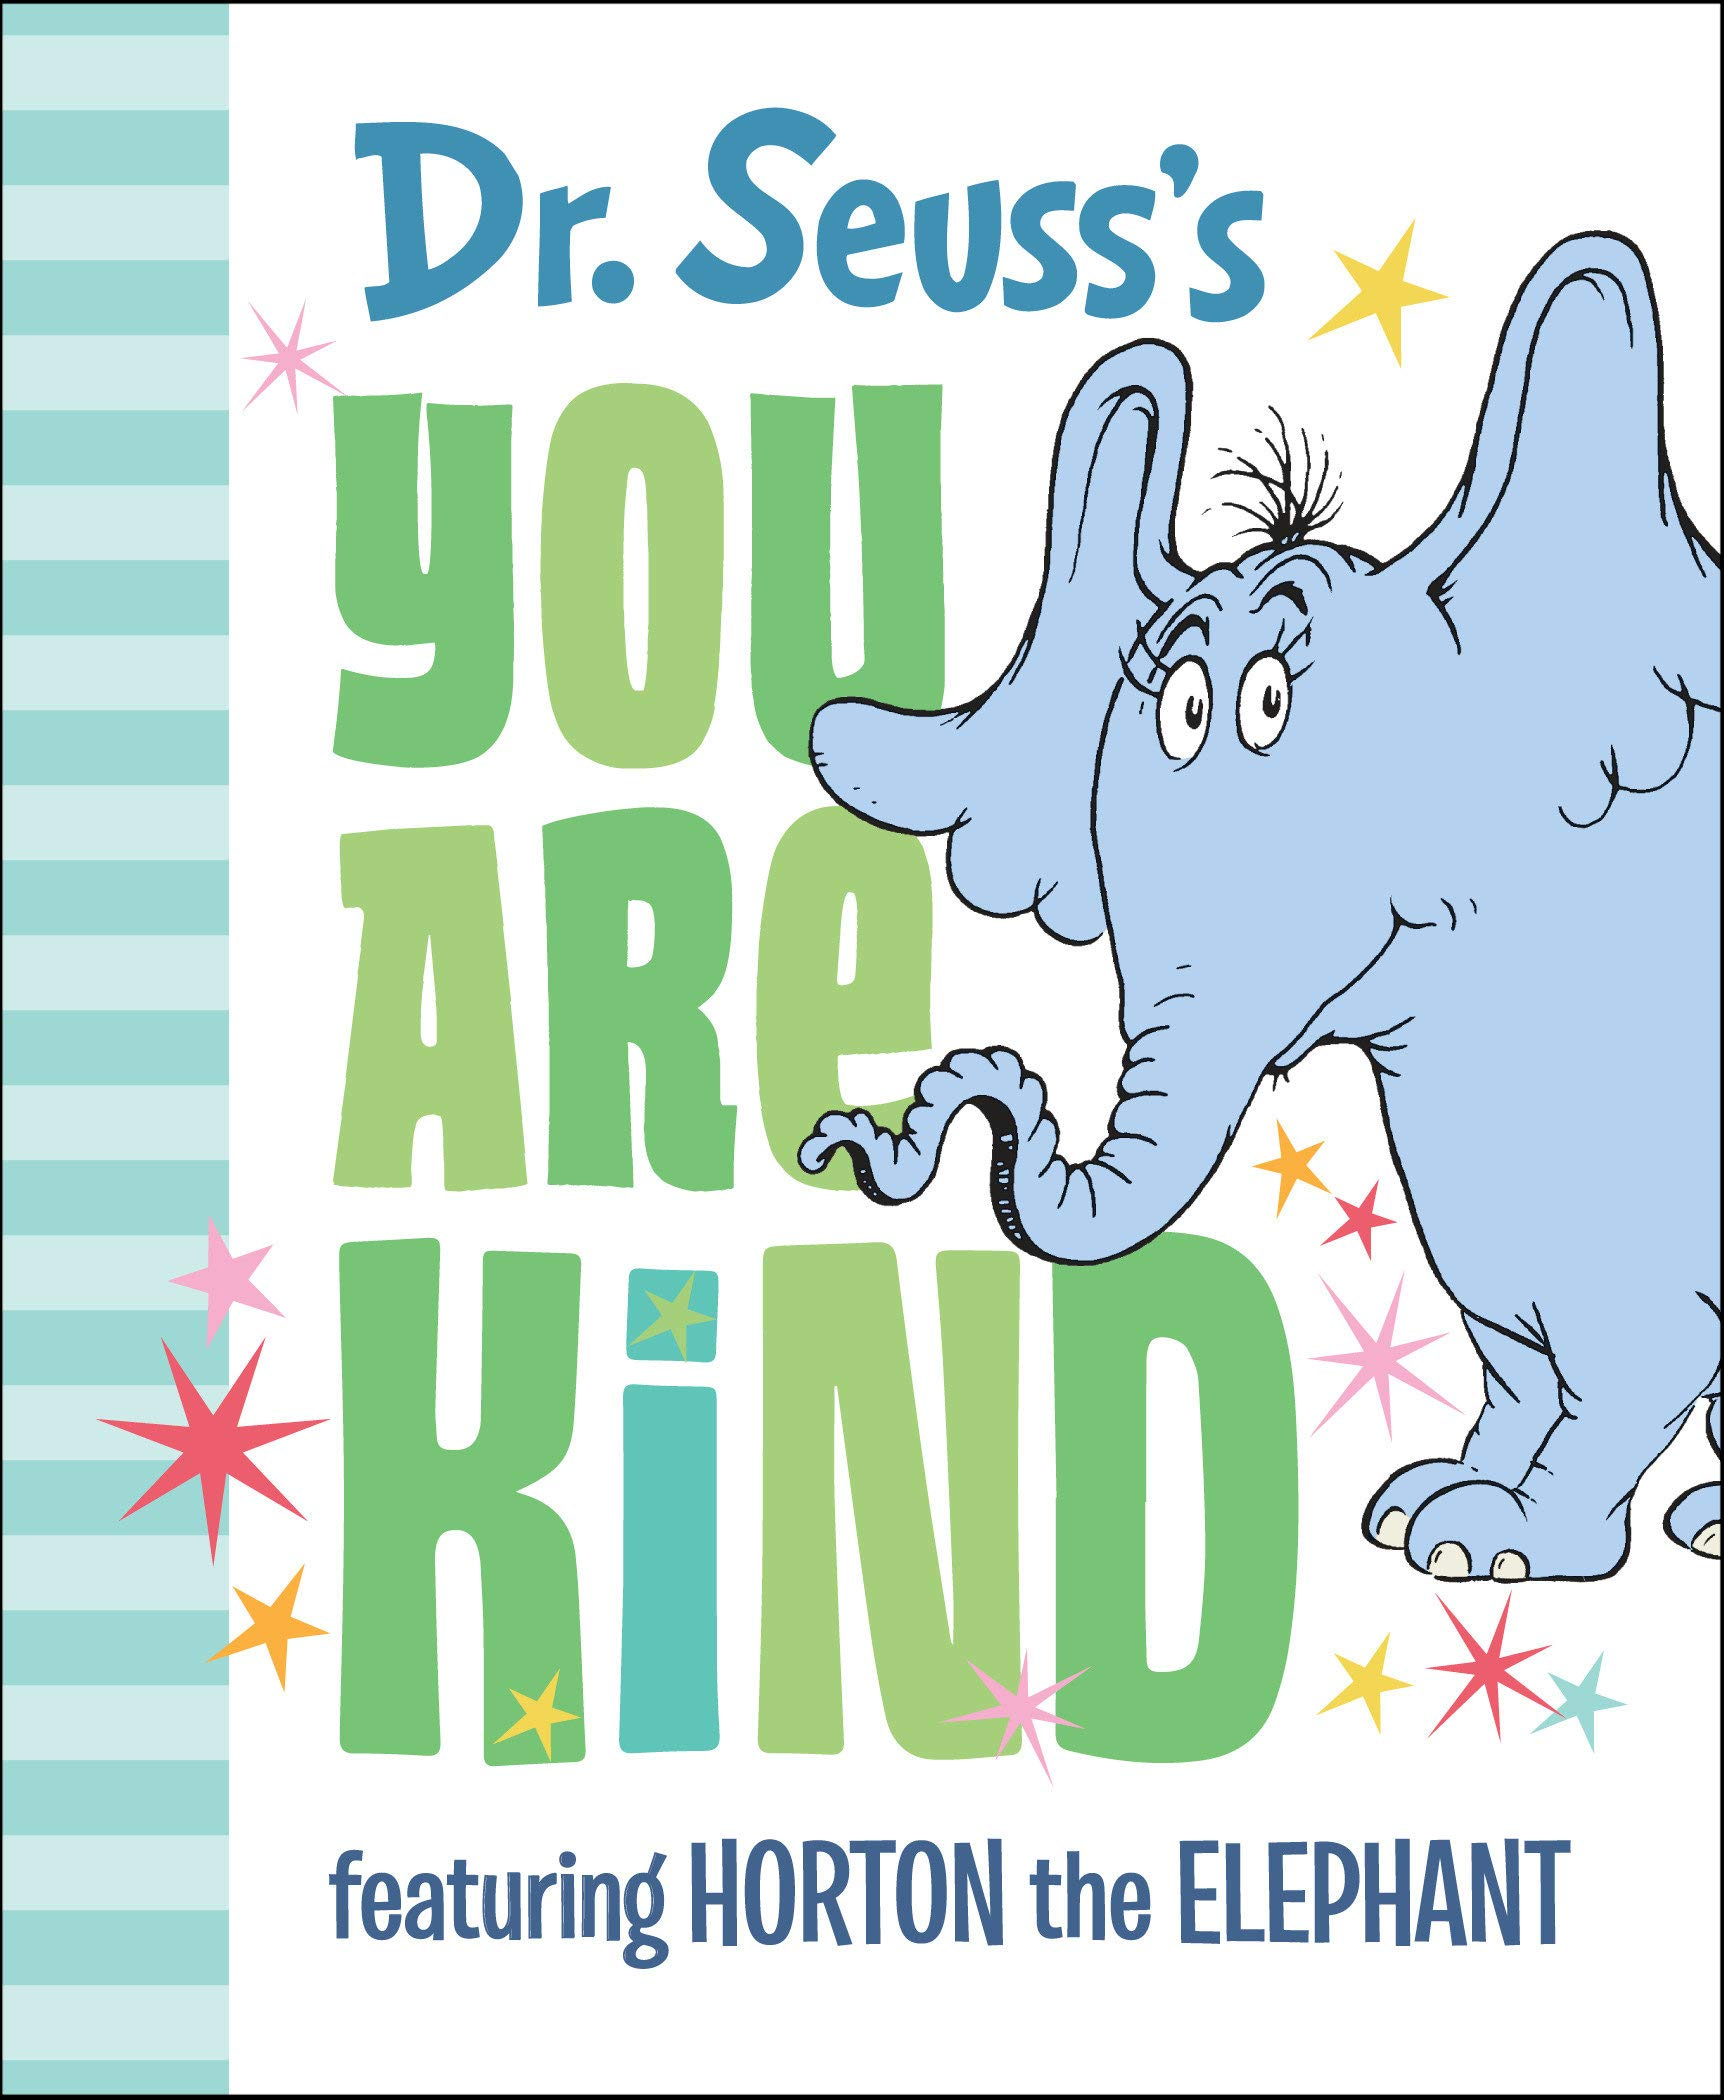 Dr. Seuss's You Are Kind : Featuring Horton the Elephant Only $6.00 (Reg $6.50) + Free Store Pickup at Target.com!